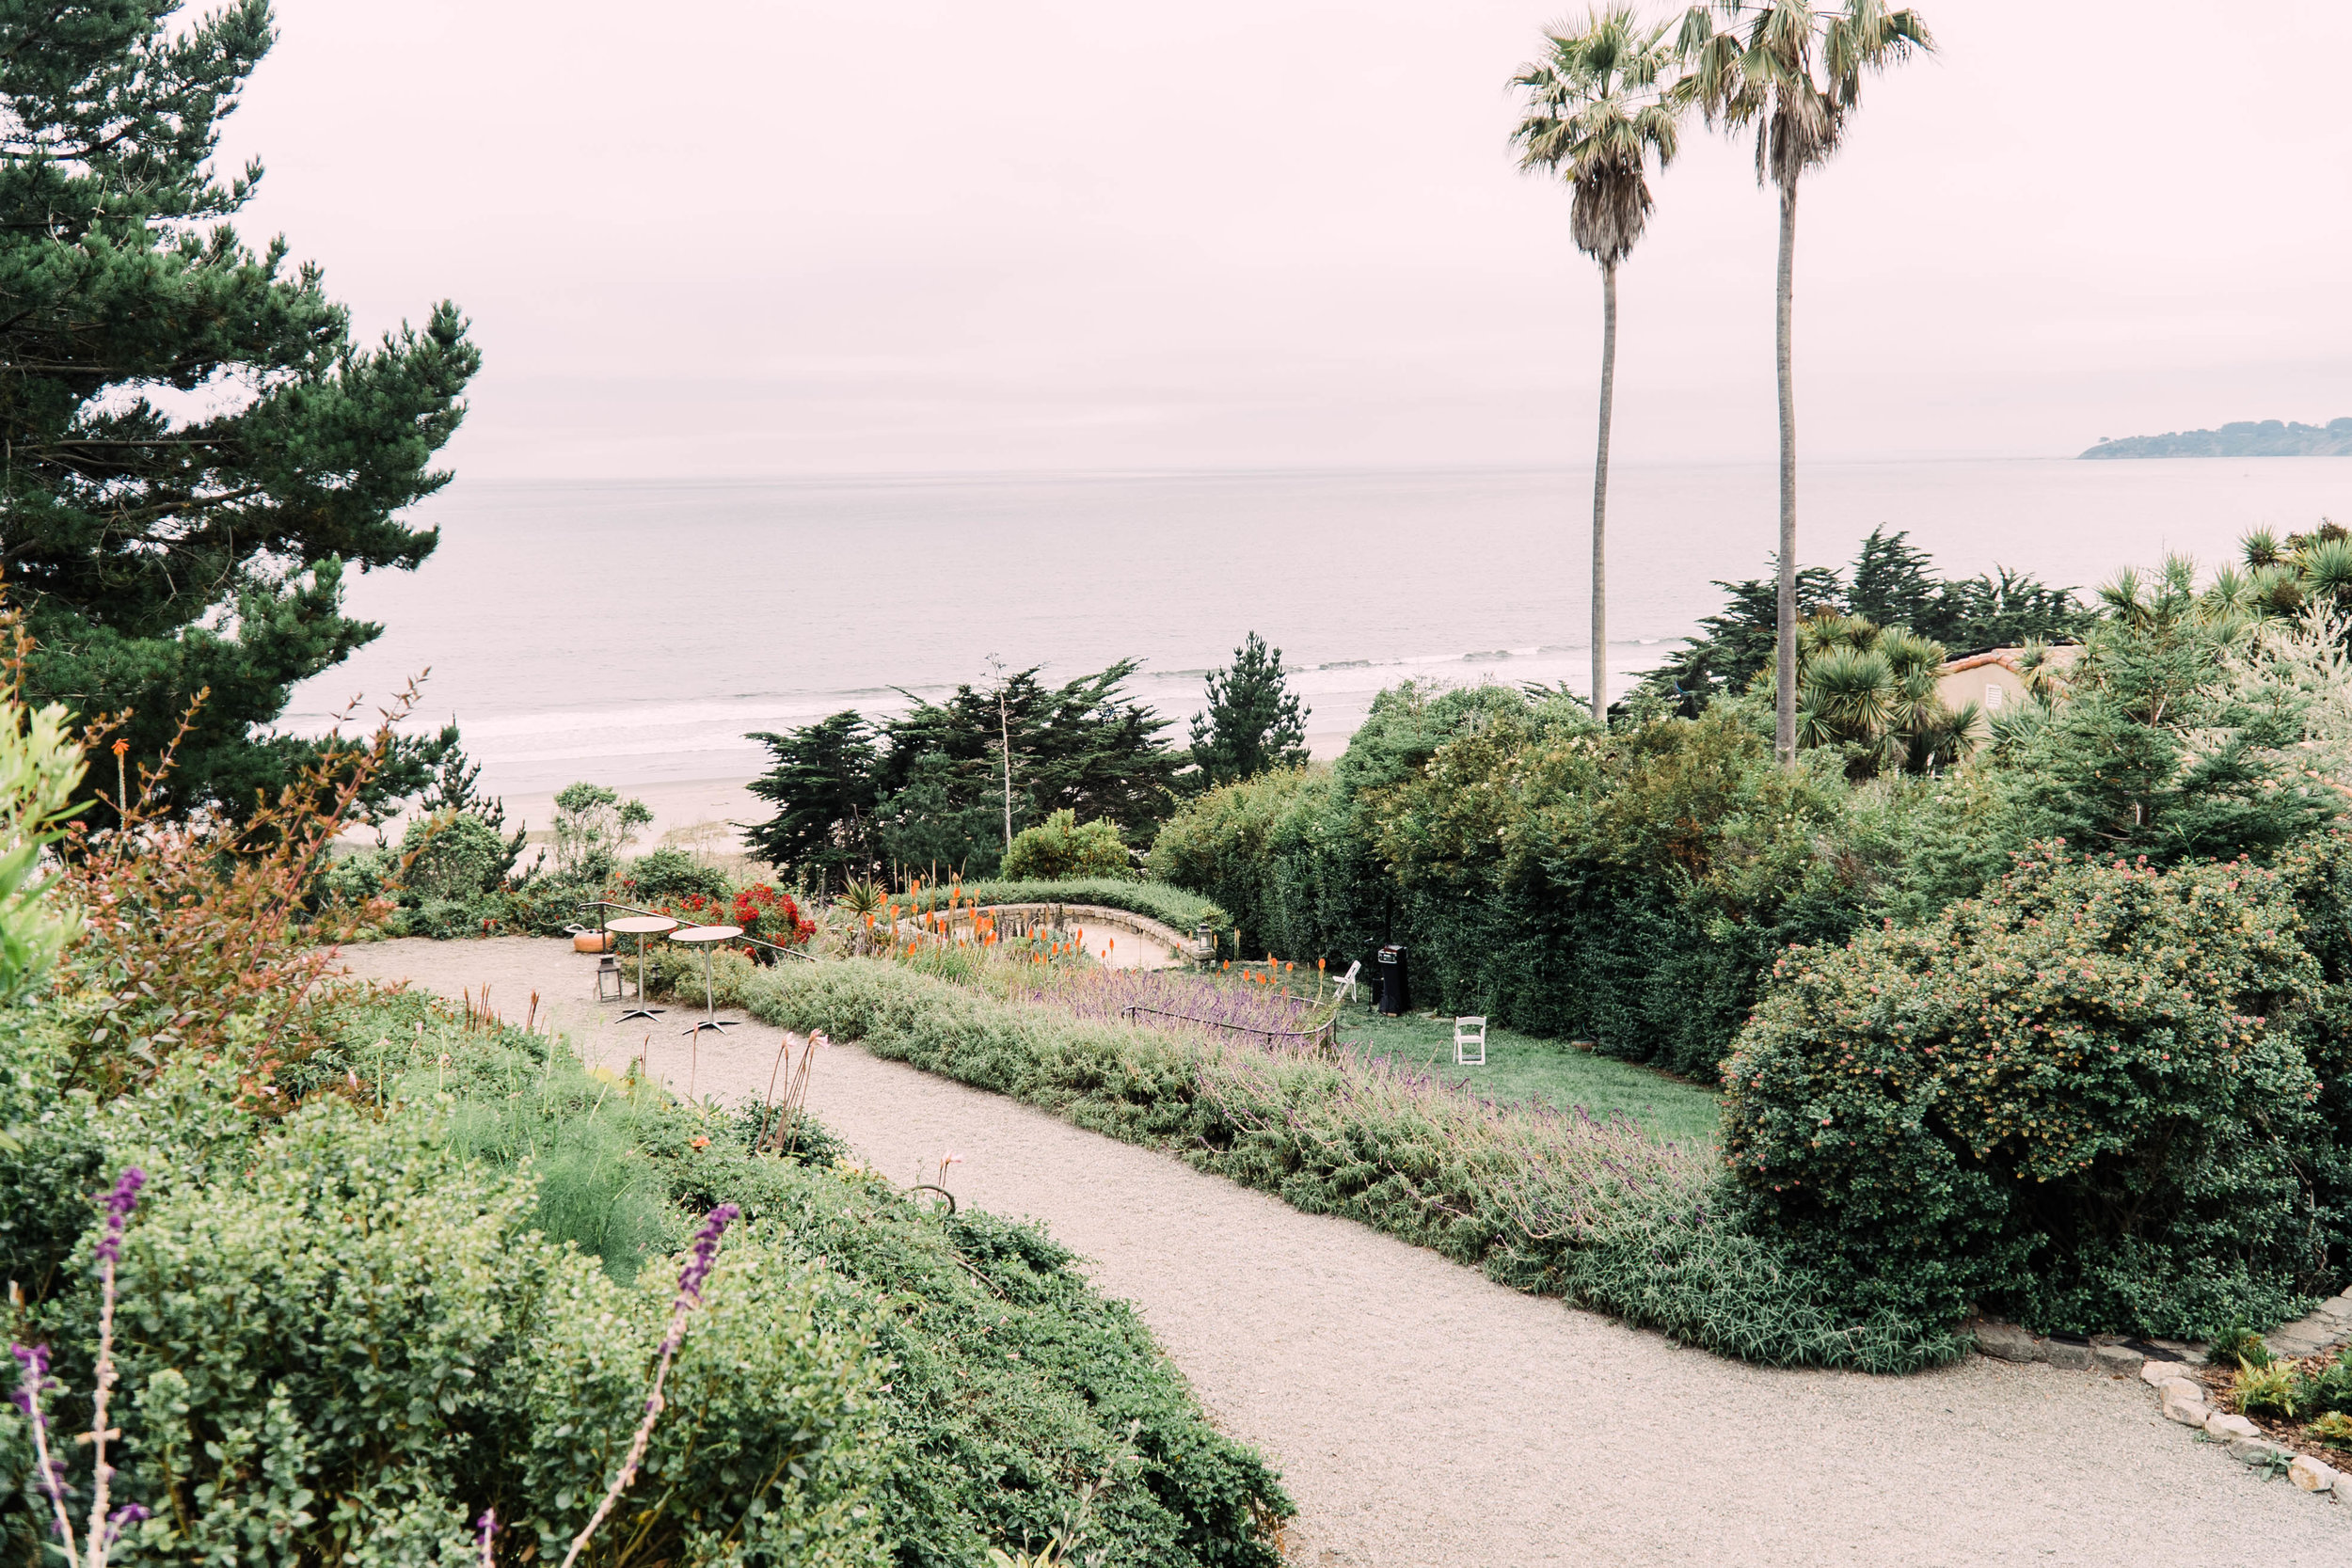 Dipsea Gardens Wedding Venue